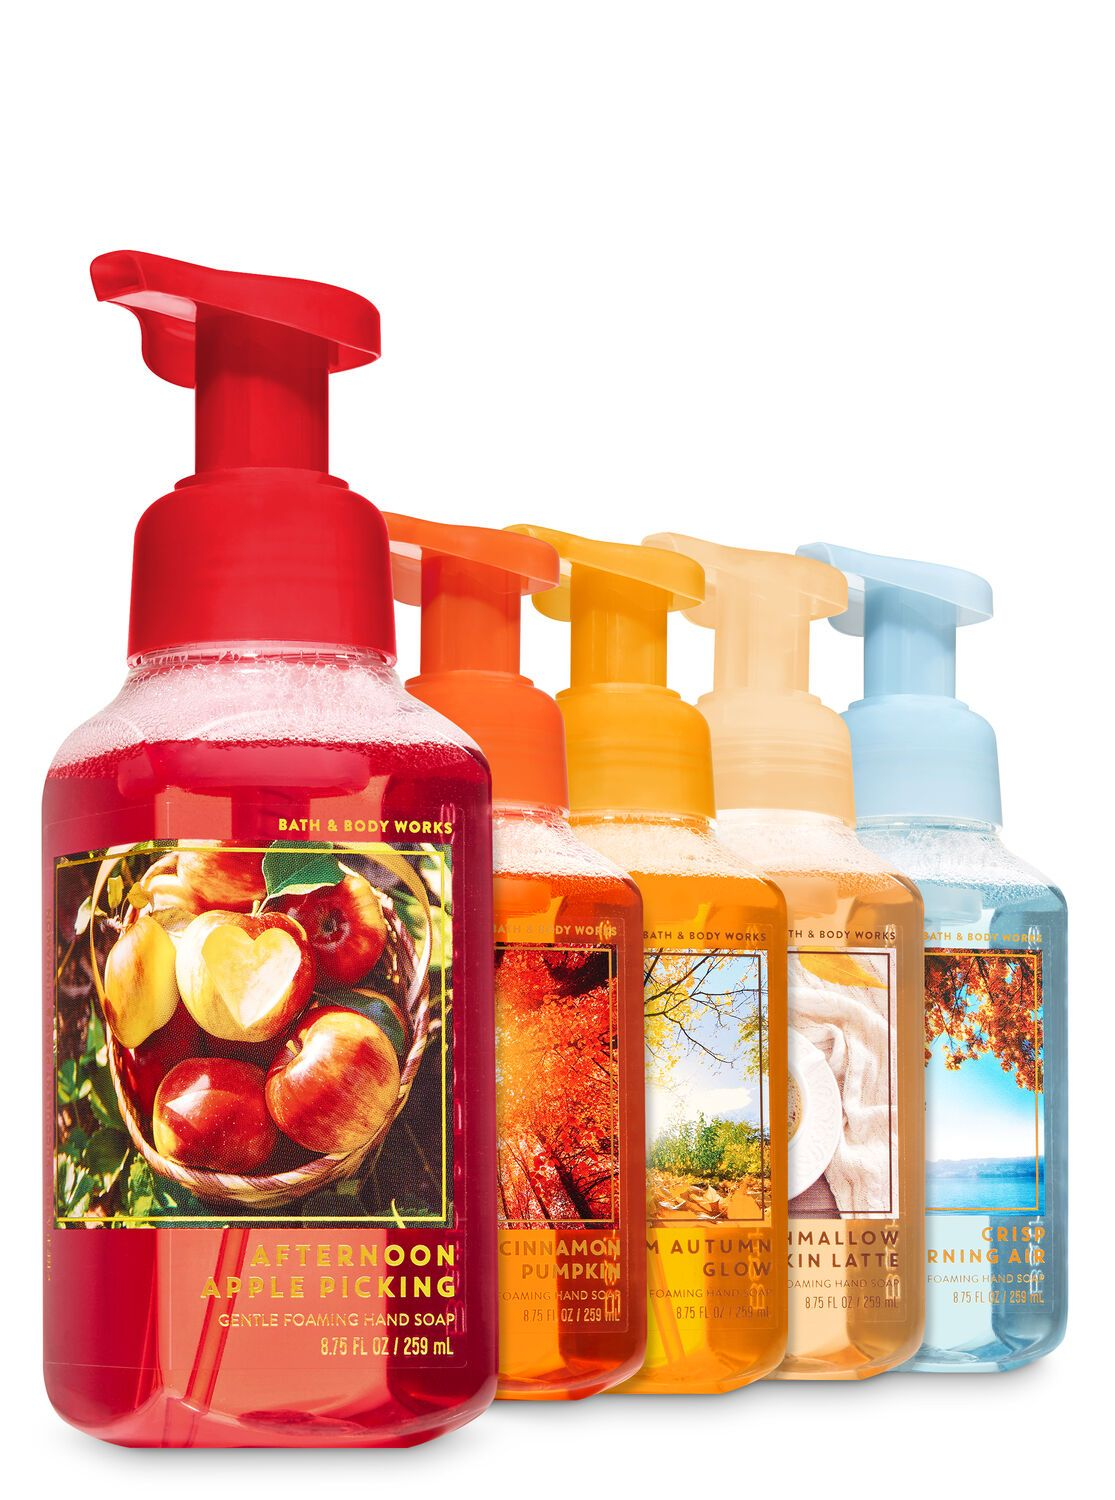 Pin By Becky Vance On Bath And Beauty In 2019 Bath Body Works